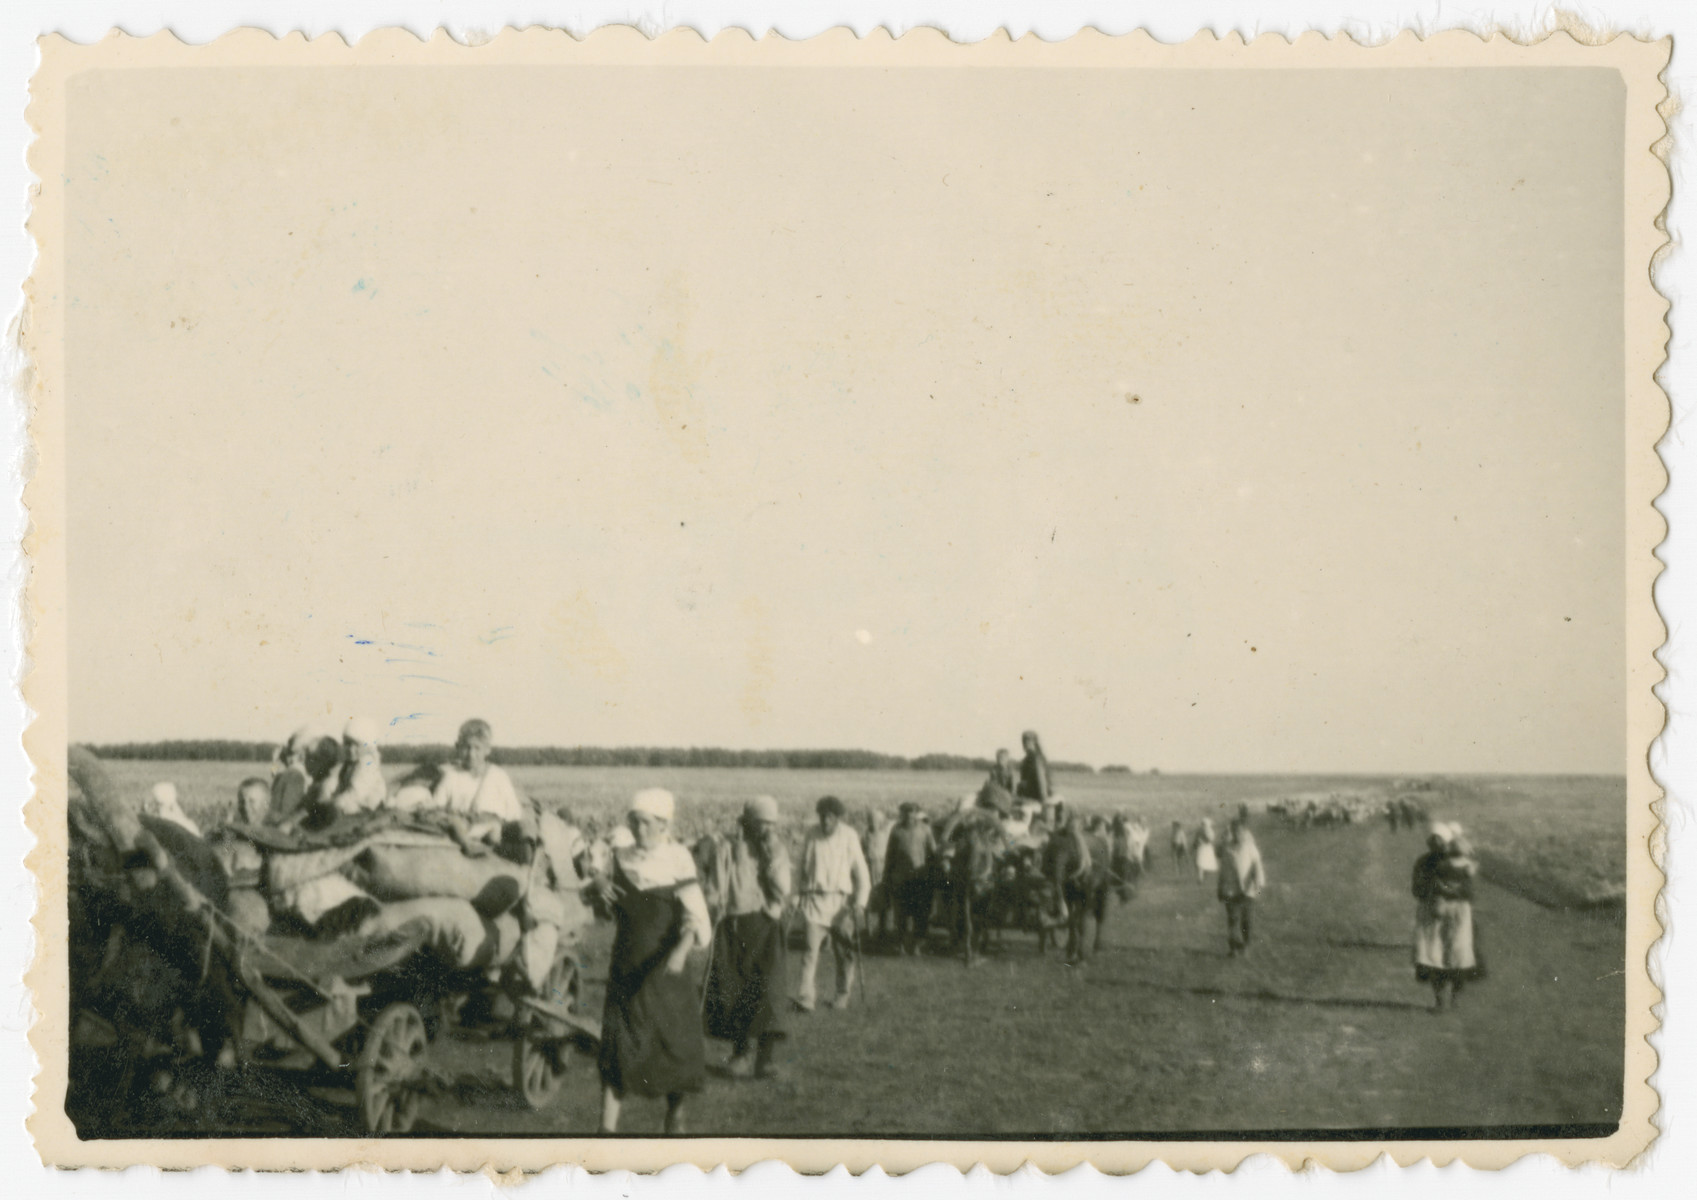 Photograph of civilians and wagons laden with  personal belongings taken during a possible resettlement action.